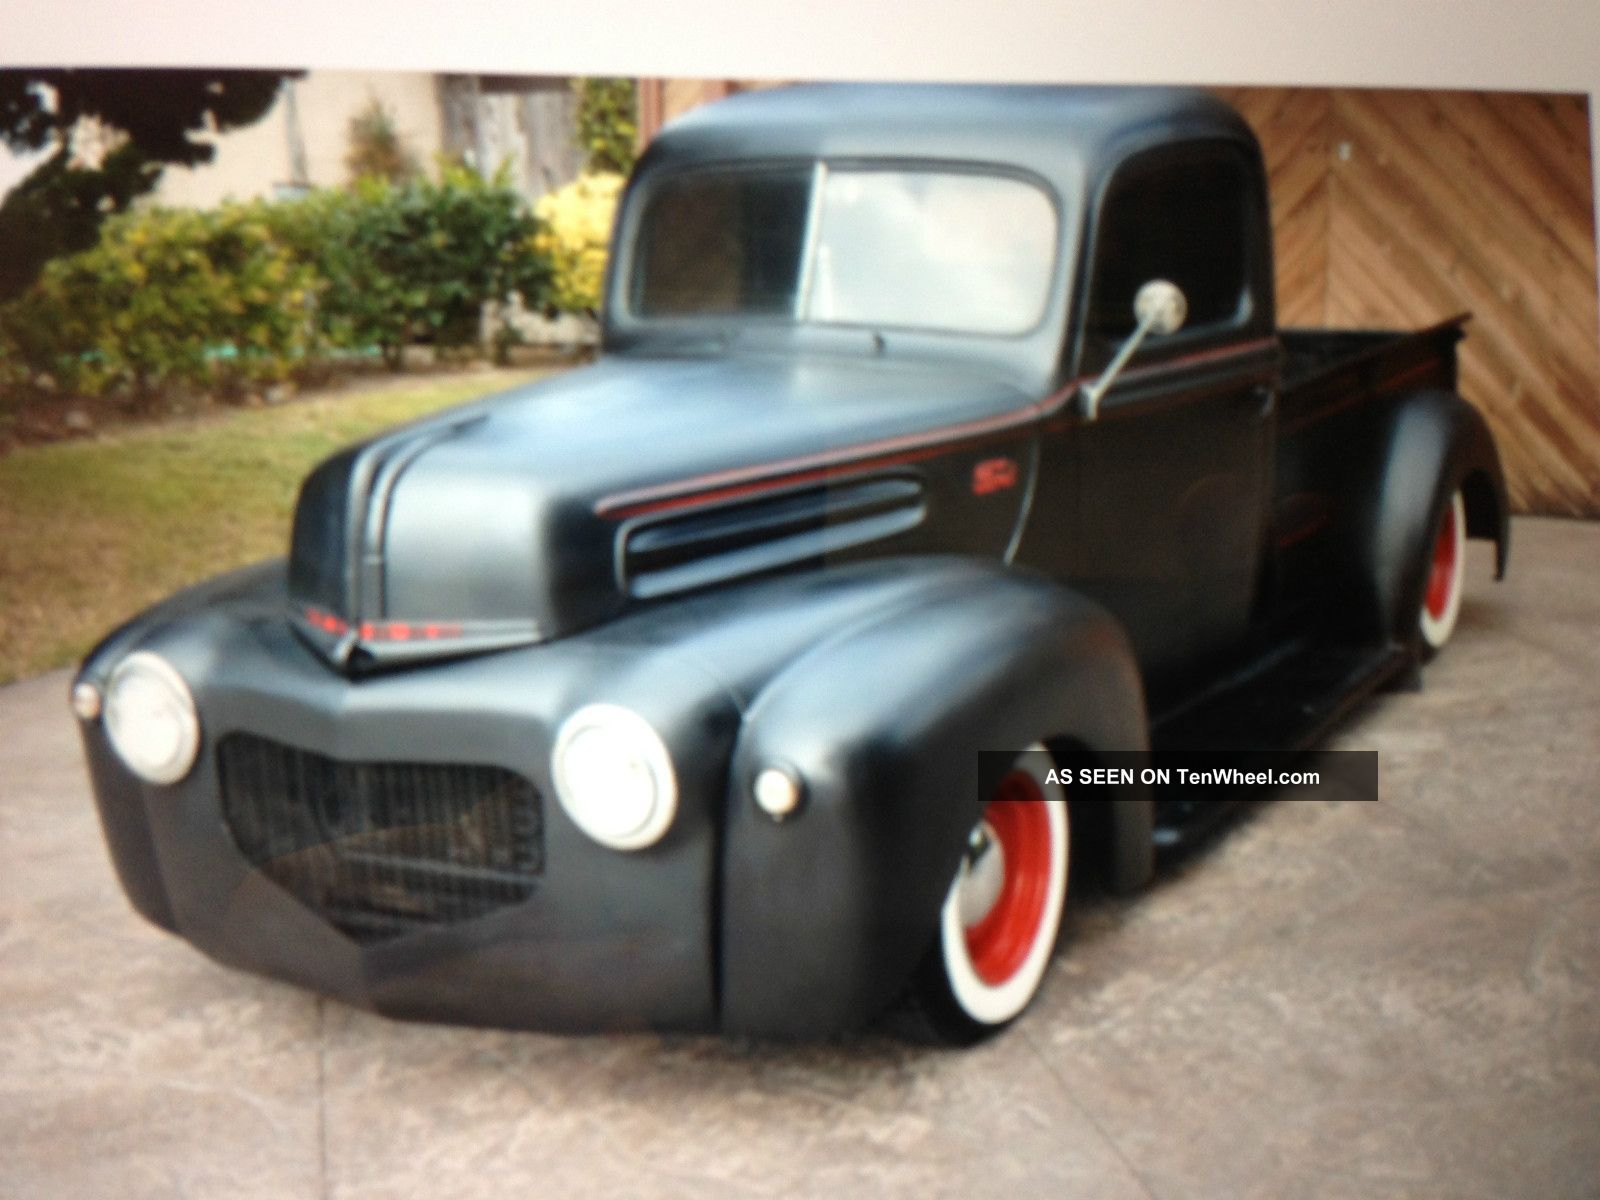 1947 Ford F100 Great Hot Rod Needs Nothing F-100 photo